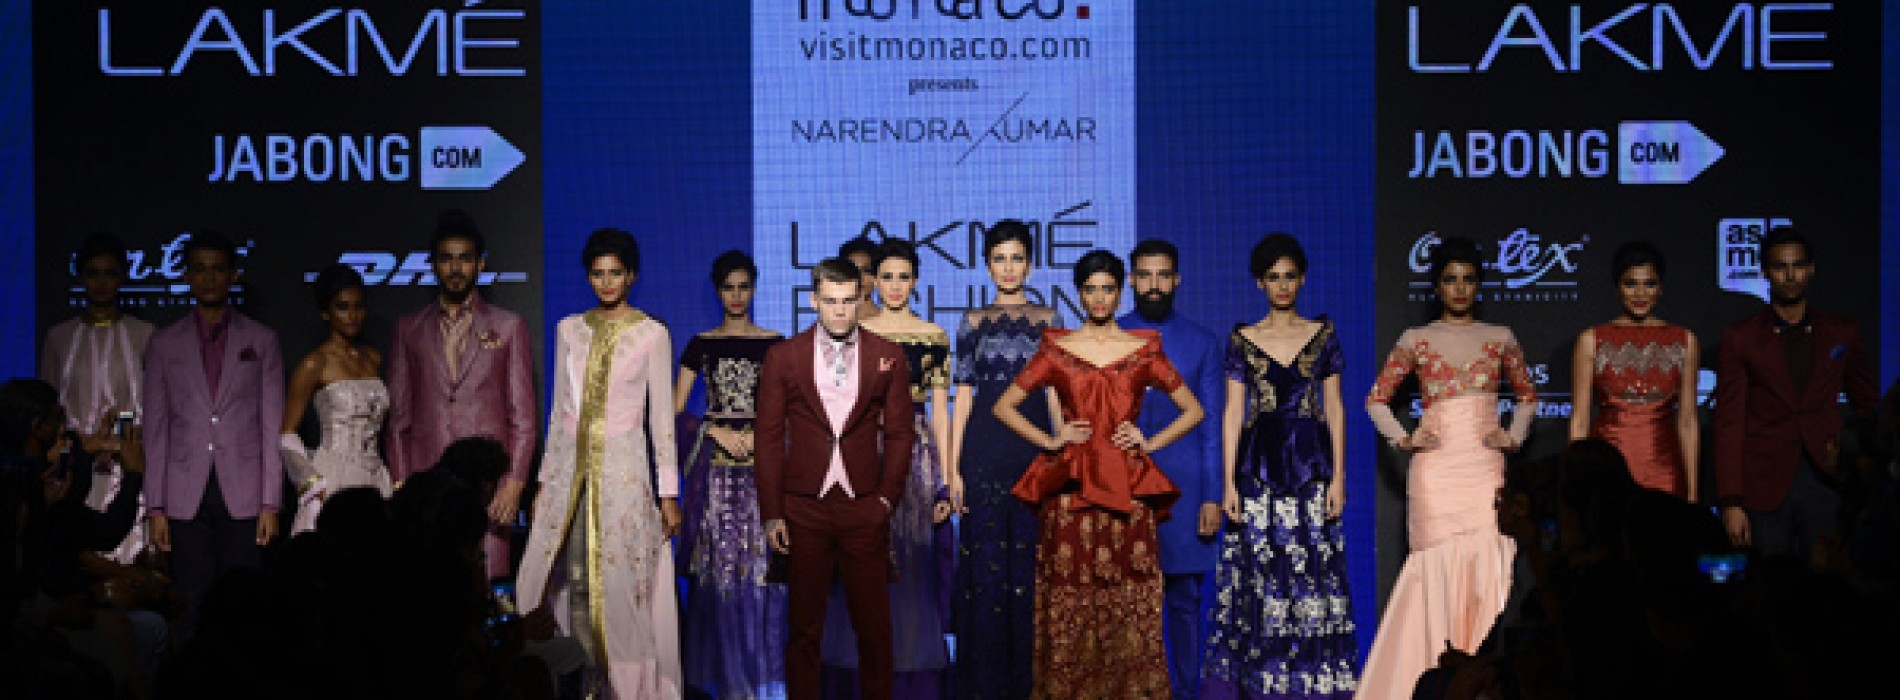 Monaco Tourism targets the New Age and Young Indians